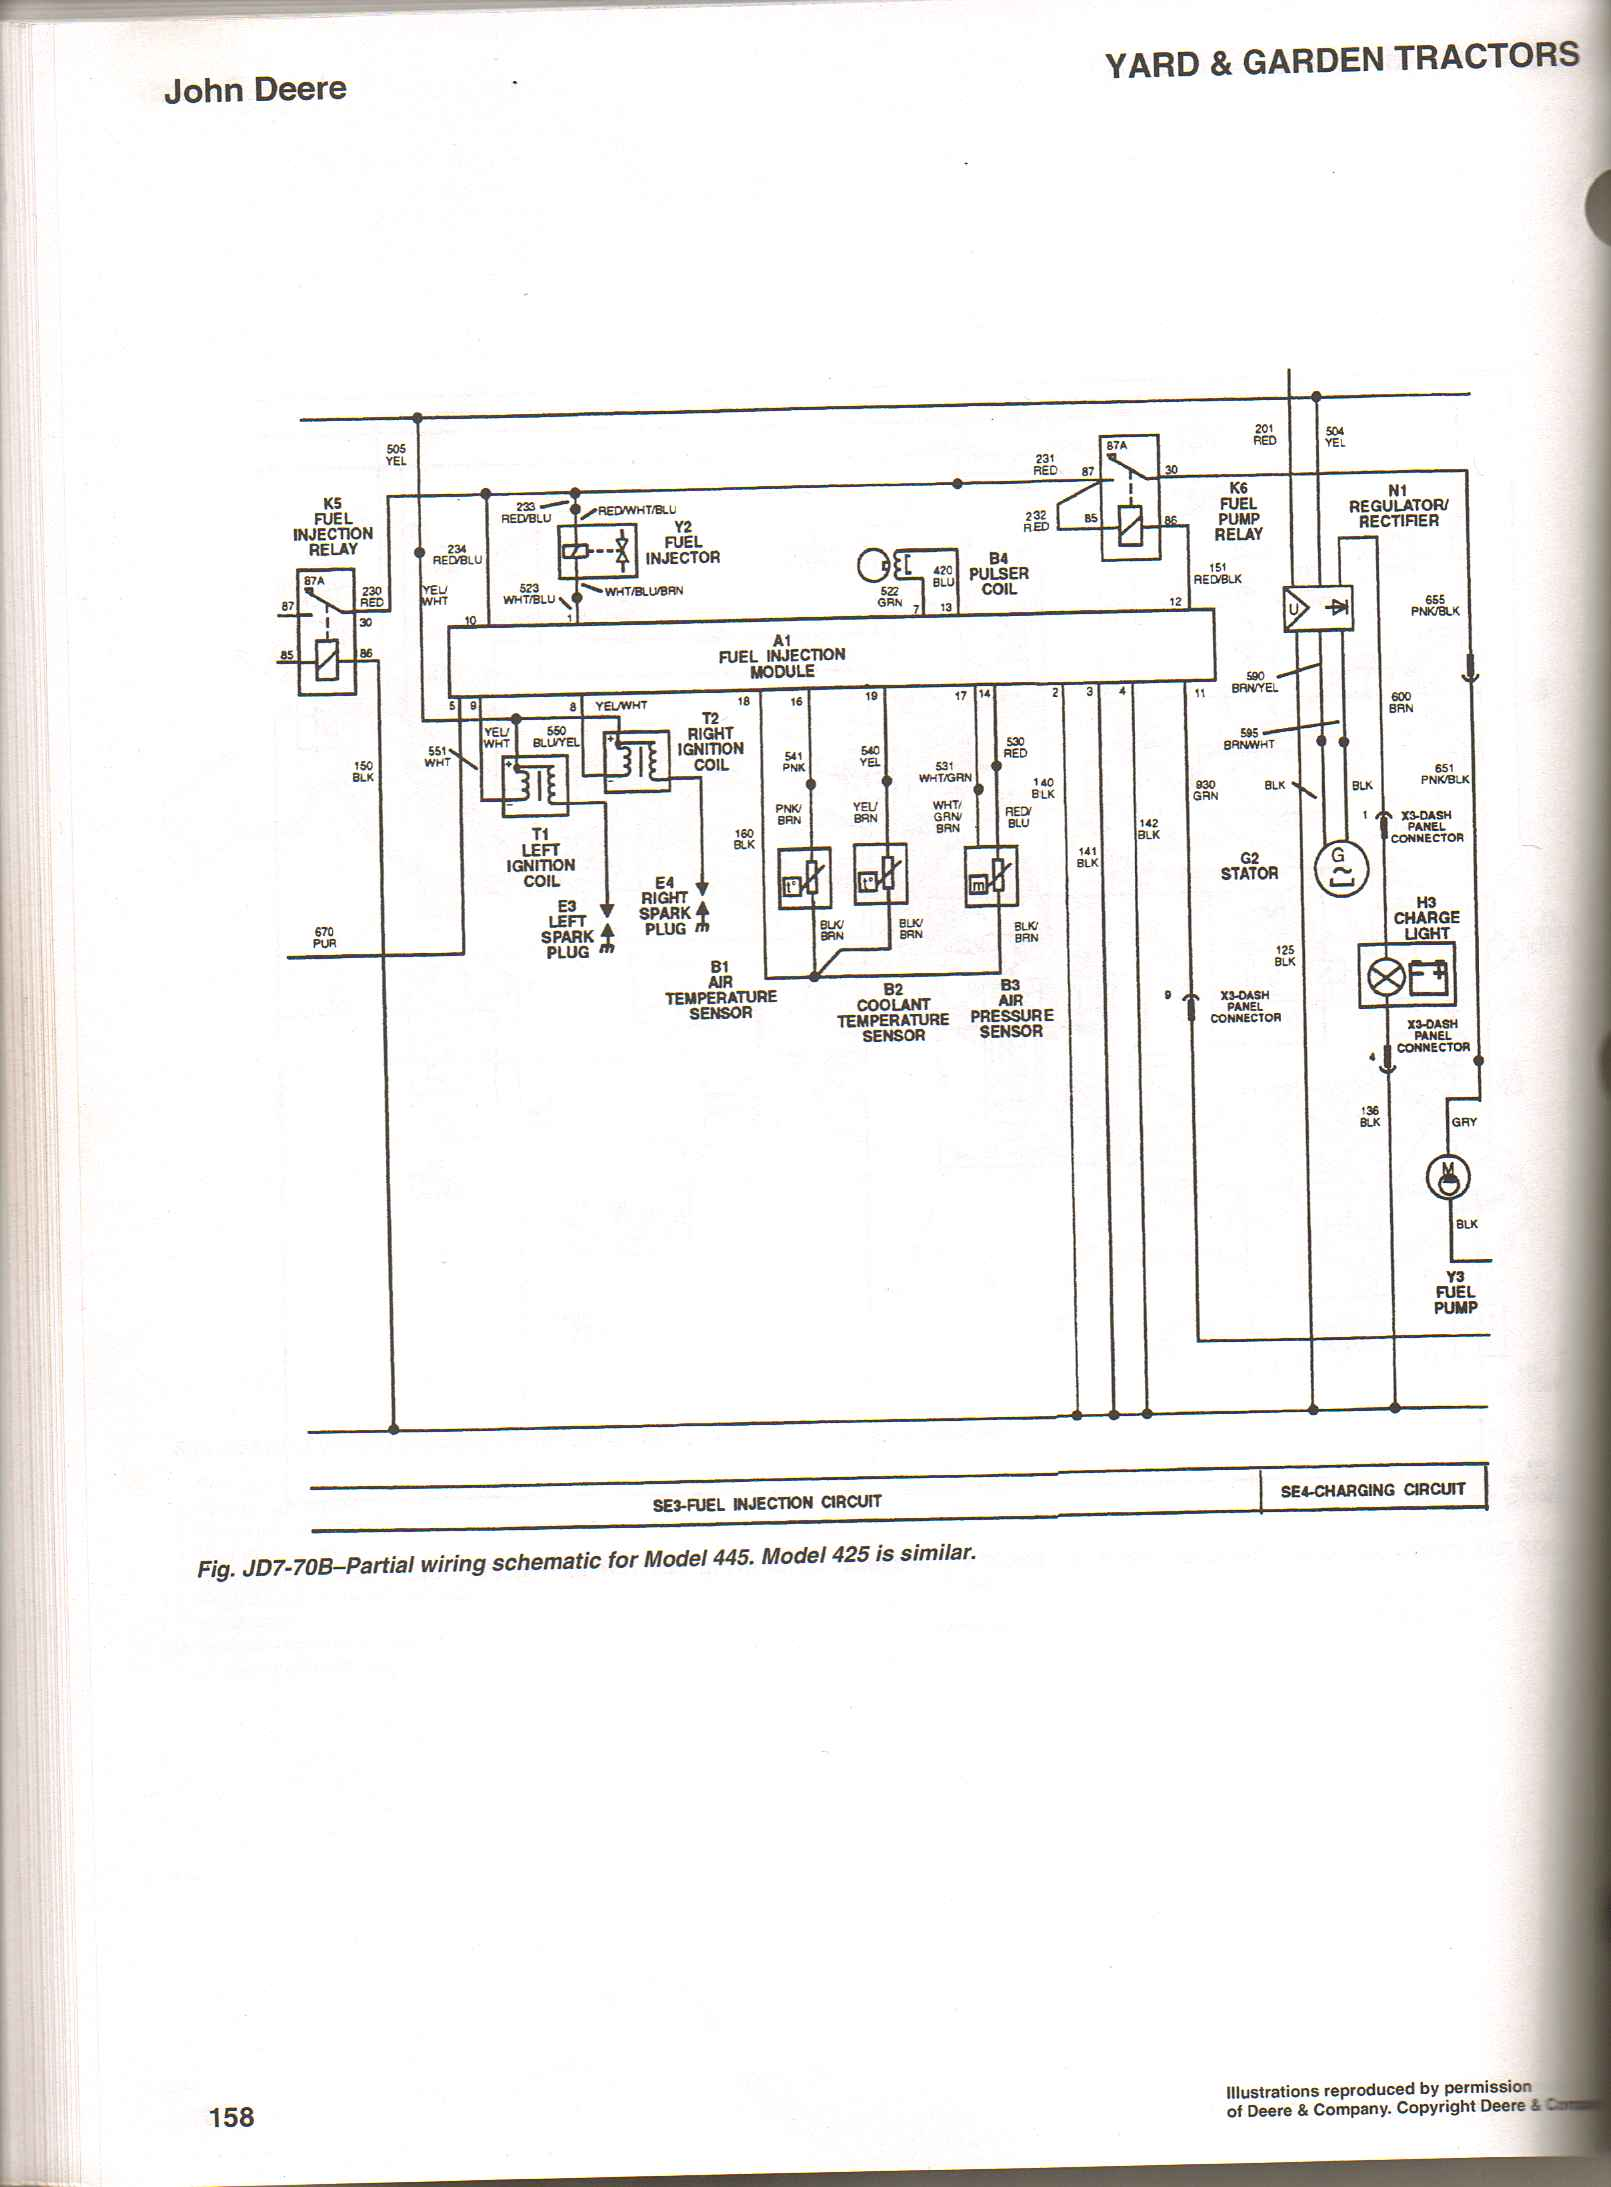 John Deere 40 Wiring Diagram Free Download | Schematic Diagram on